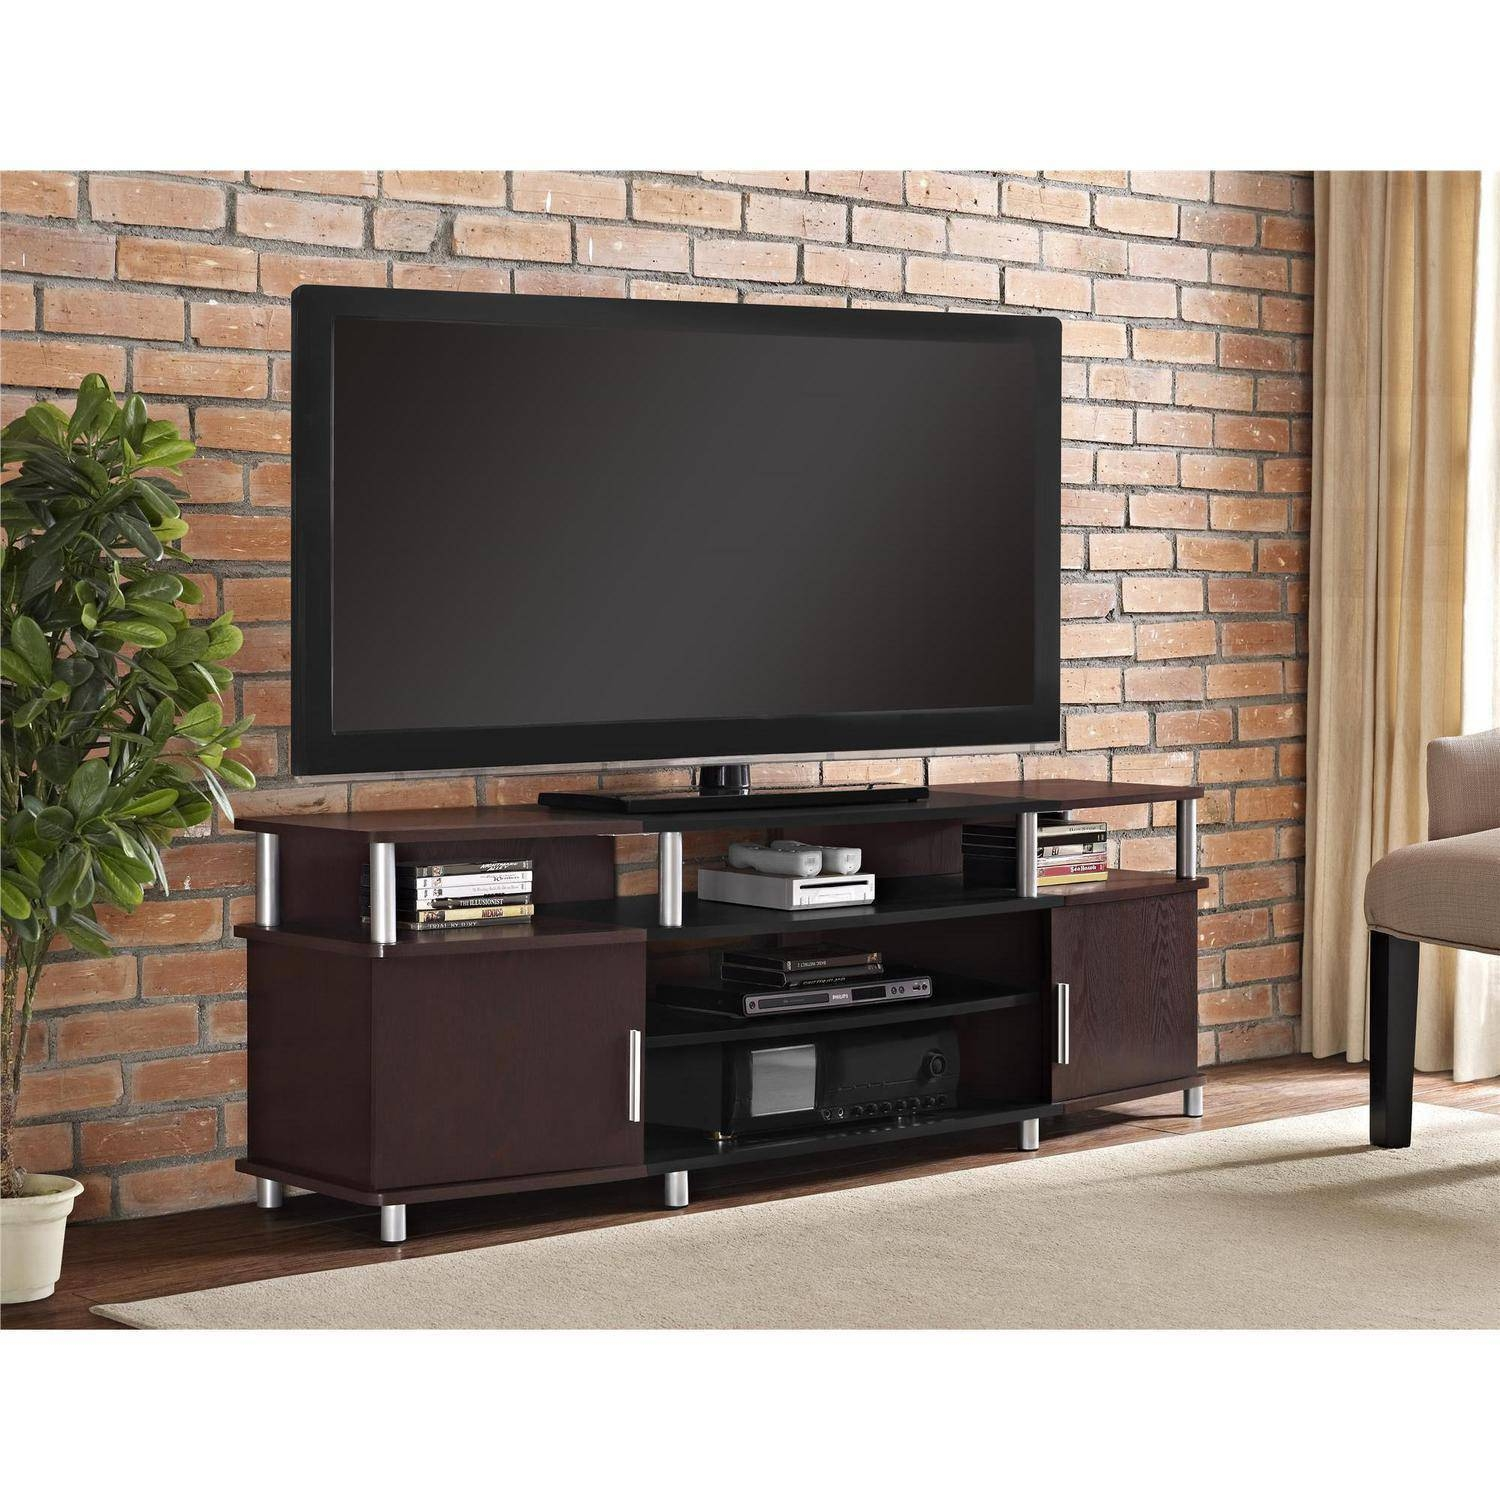 "Ameriwood Home Carson Tv Stand For Tvs Up To 70"" Wide, Cherry 